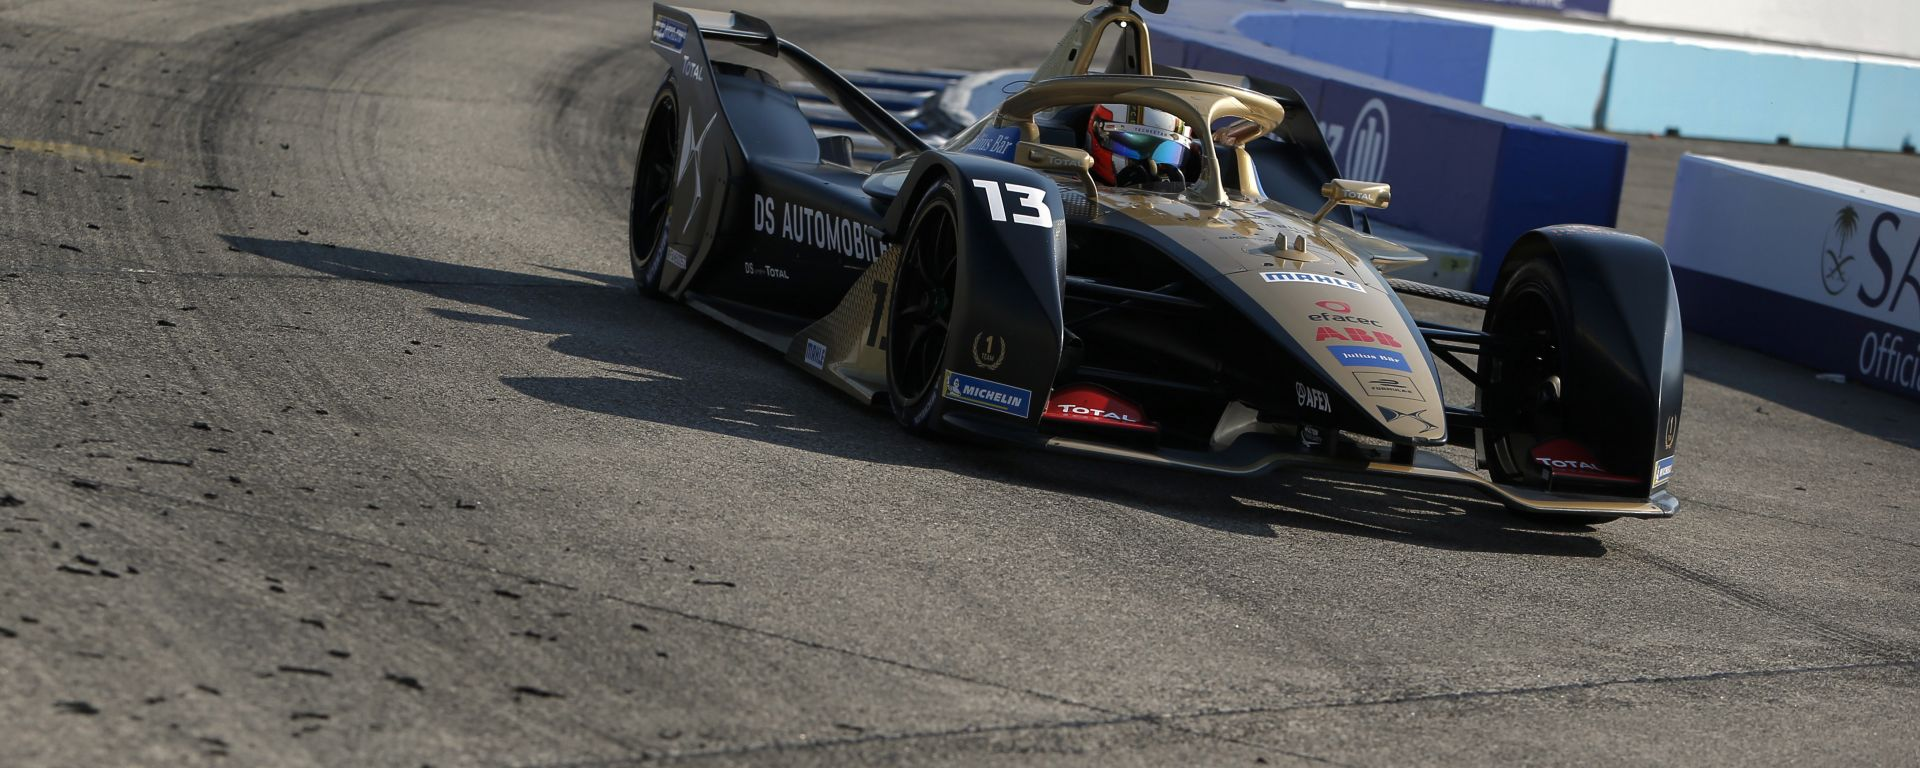 Formula E ePrix Berlino-3 2020: Antonio Felix Da Costa (DS Techeetah)